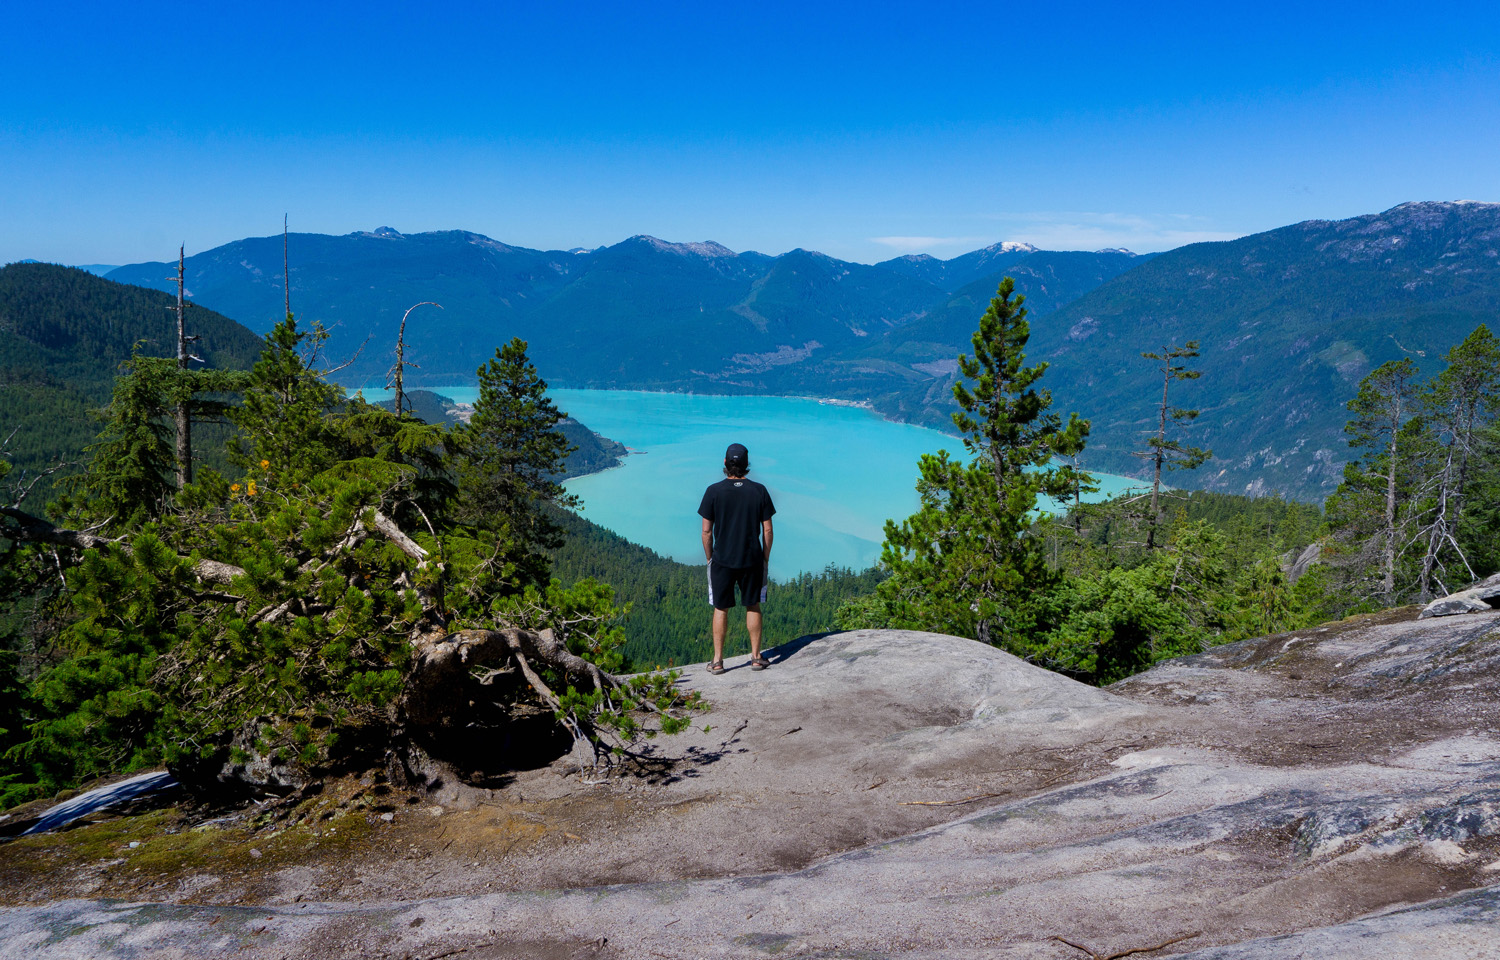 Take the Sea To Sky Gondola up to the summit of Squamish where you can explore hiking trails, a suspension bridge and more. If you're feeling adventurous, hike the Stawamus Chief to the top.